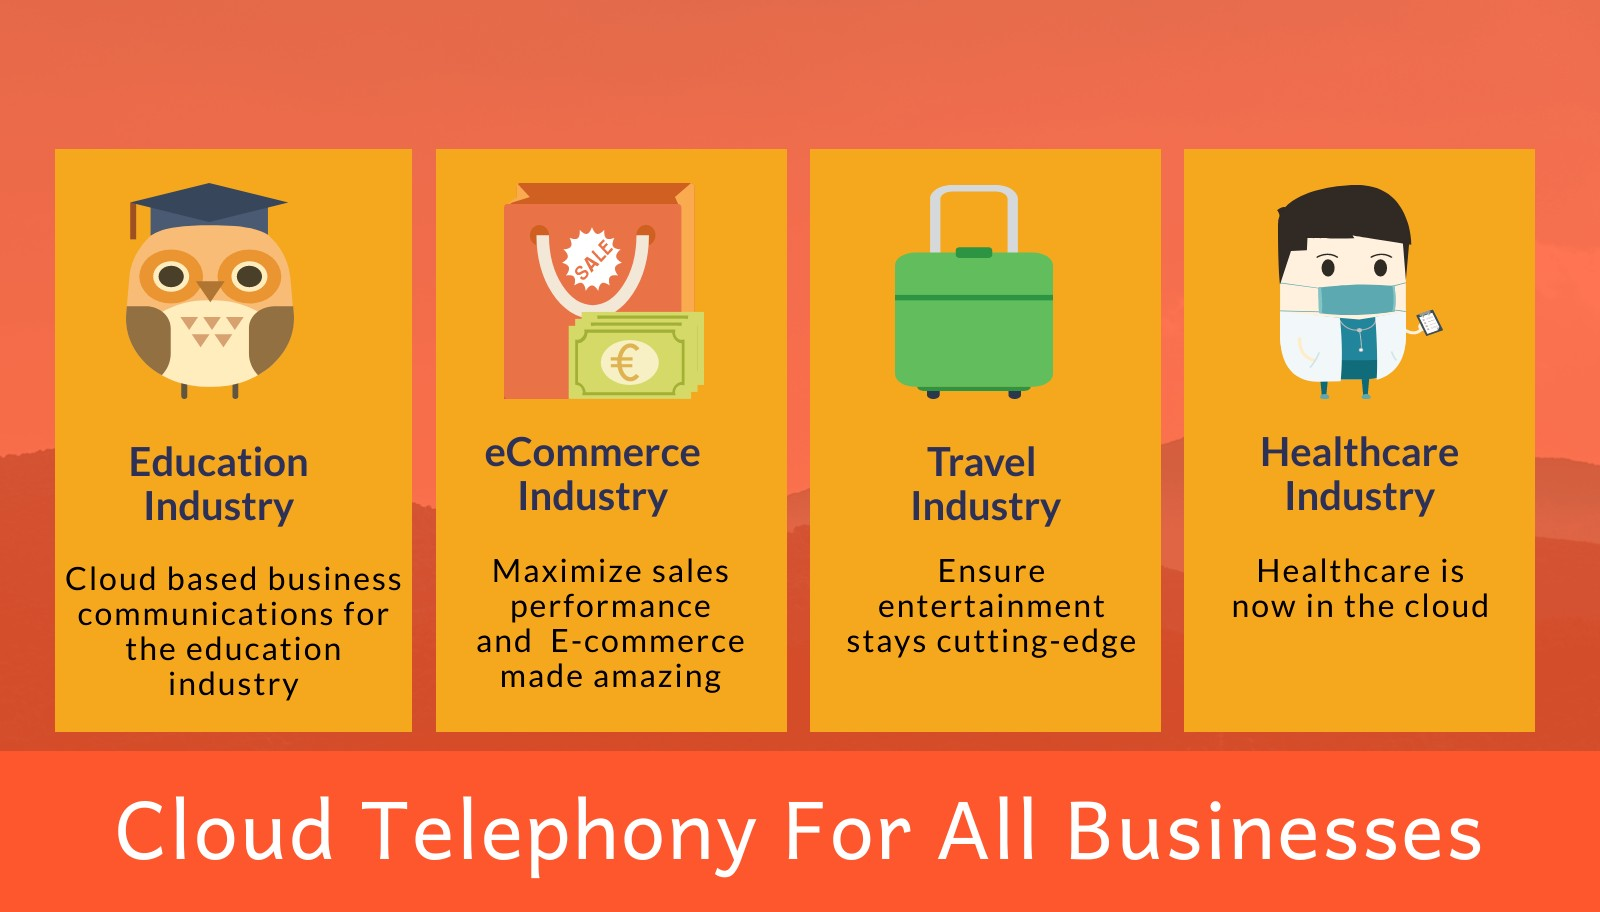 Cloud Telephony Service For SMBs and Startups